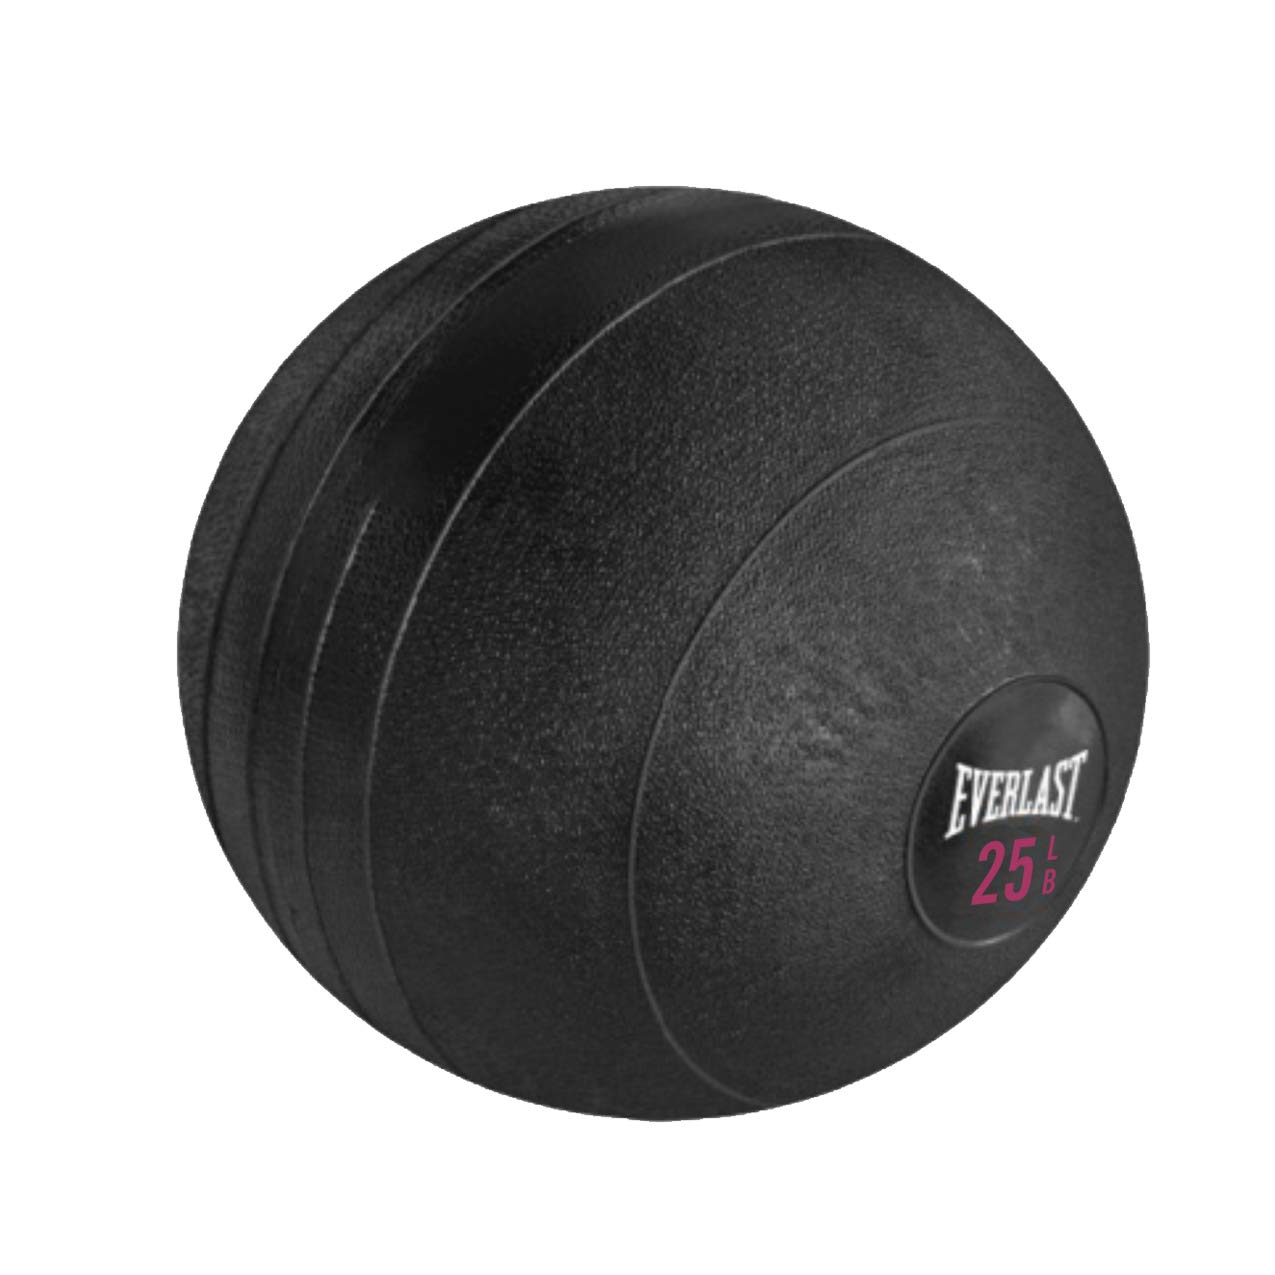 Everlast 25lb Flex Slam Ball Flex Slam Ball